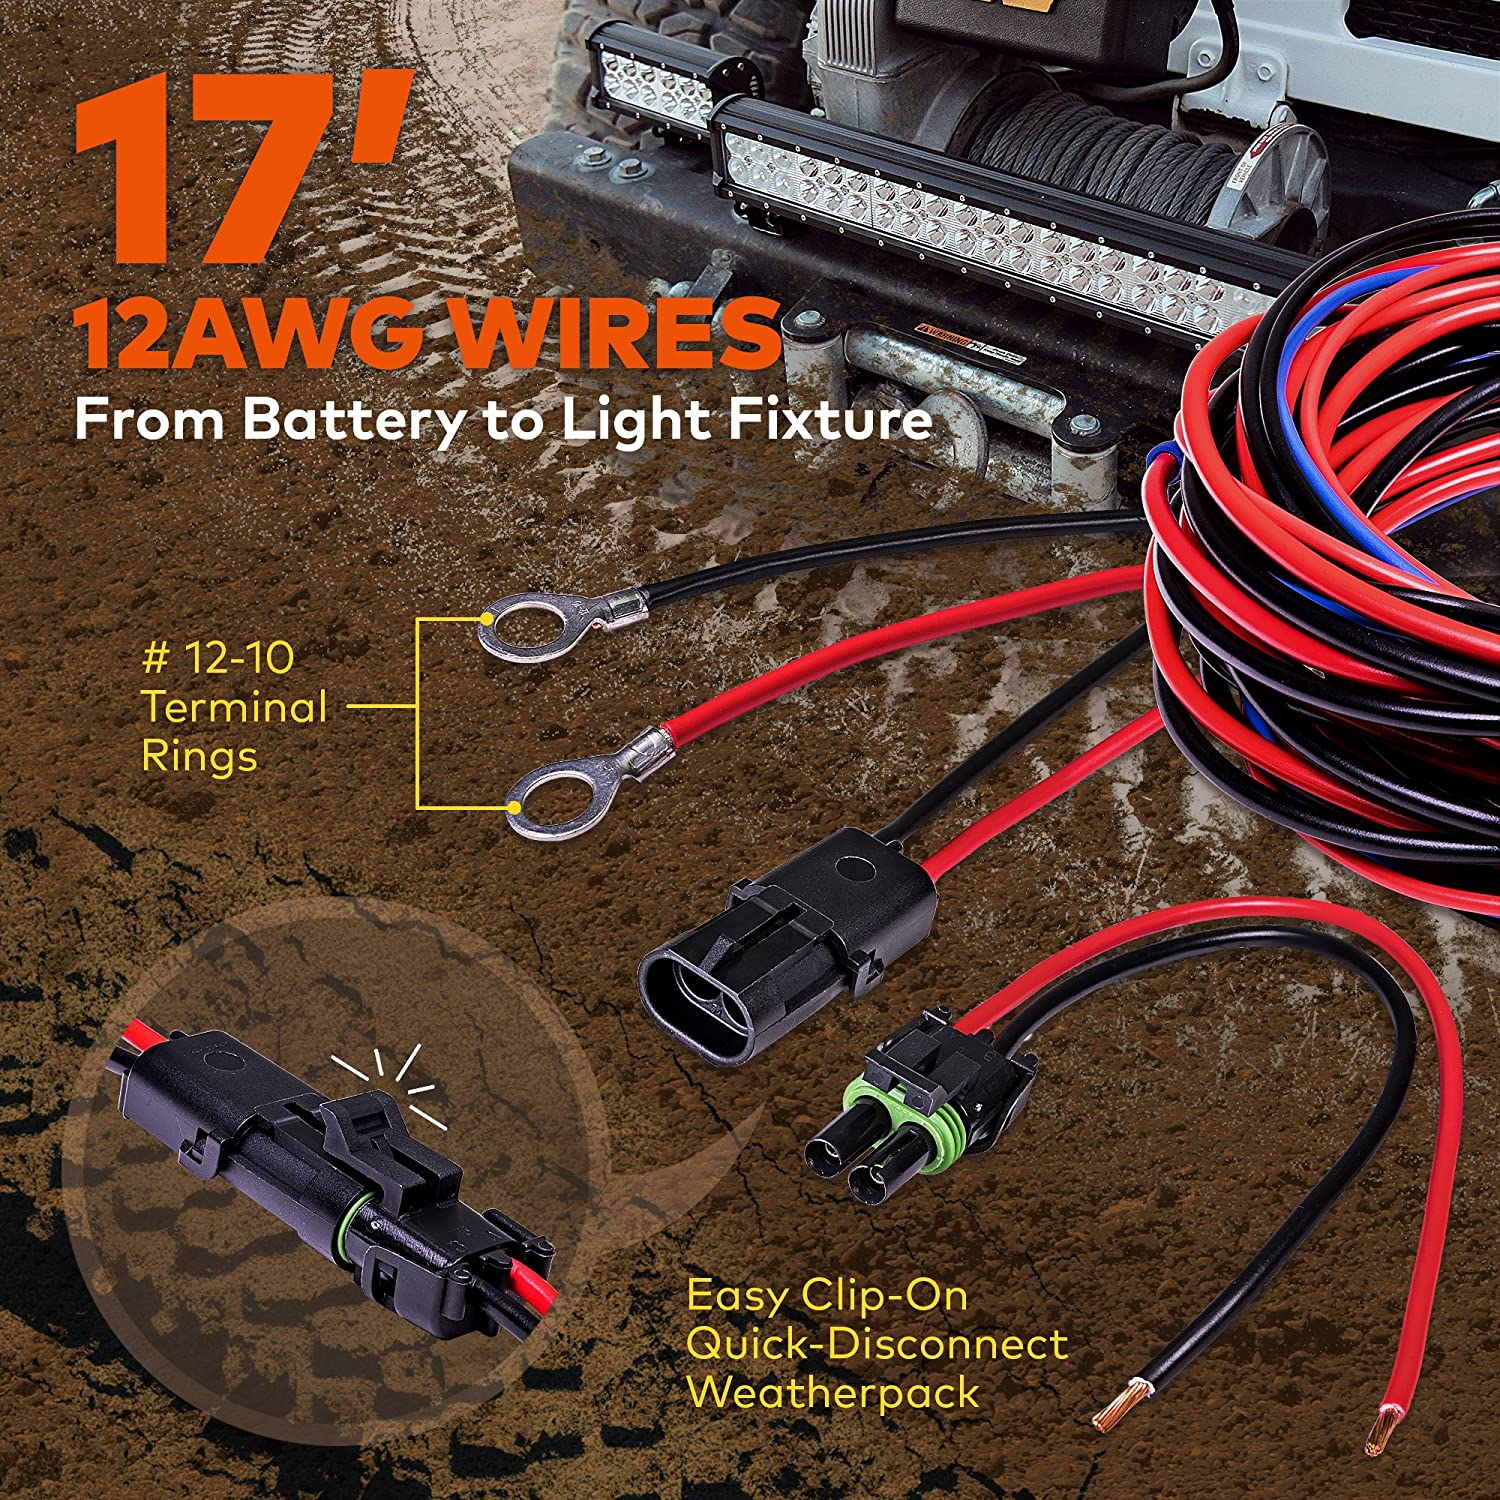 Lamphus 17 Off Road Atv Jeep Led Light Bar Wiring Daystar Ku80011 Diagram Harness Kit Made In Usa Hd 12awg Wire Ip65 Waterproof Rectangle Switch Heavy Duty